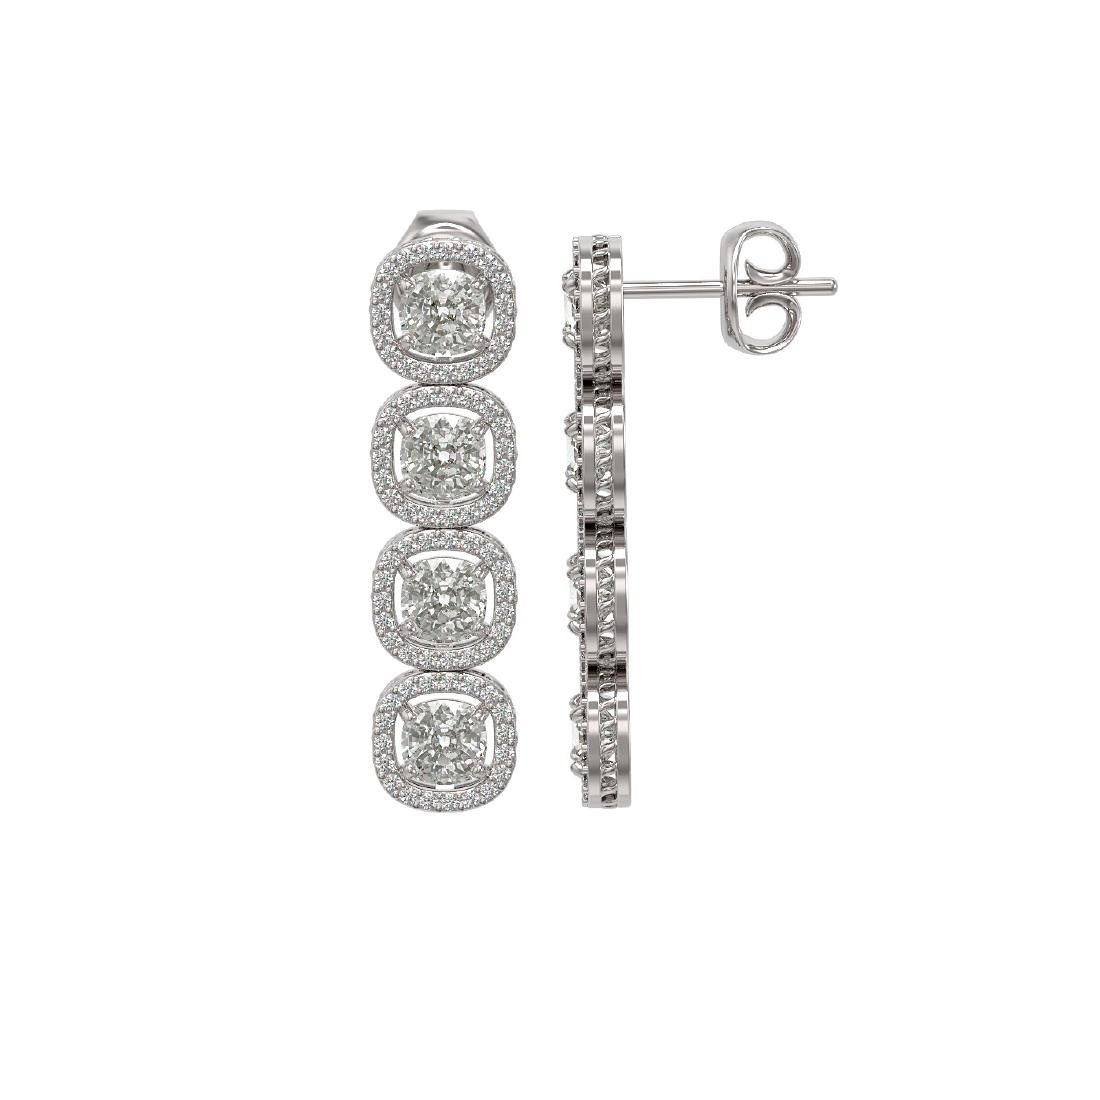 5.28 CTW Cushion Diamond Designer Earrings 18K White - 2